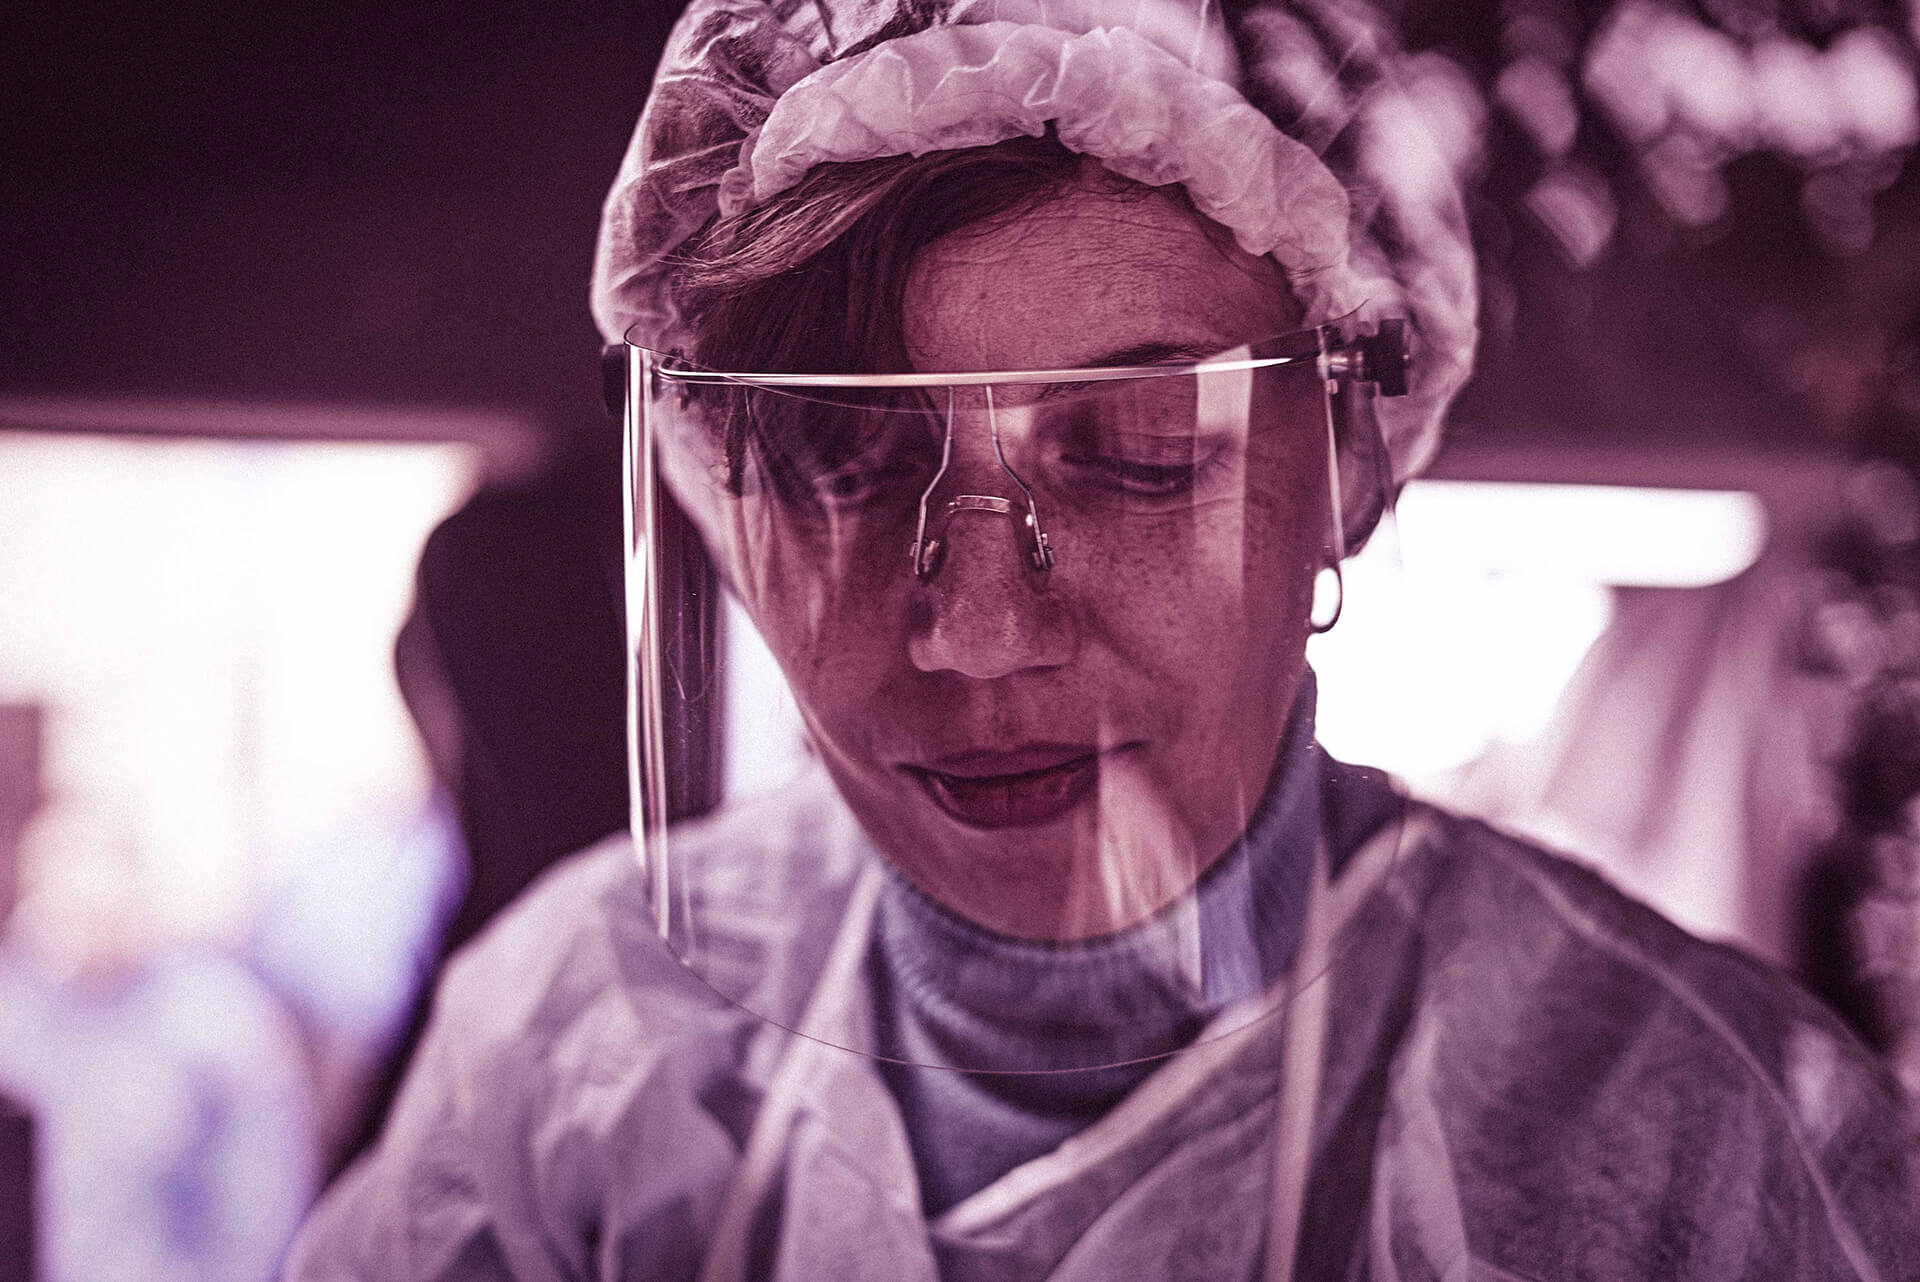 A medical worker wearing a face mask.